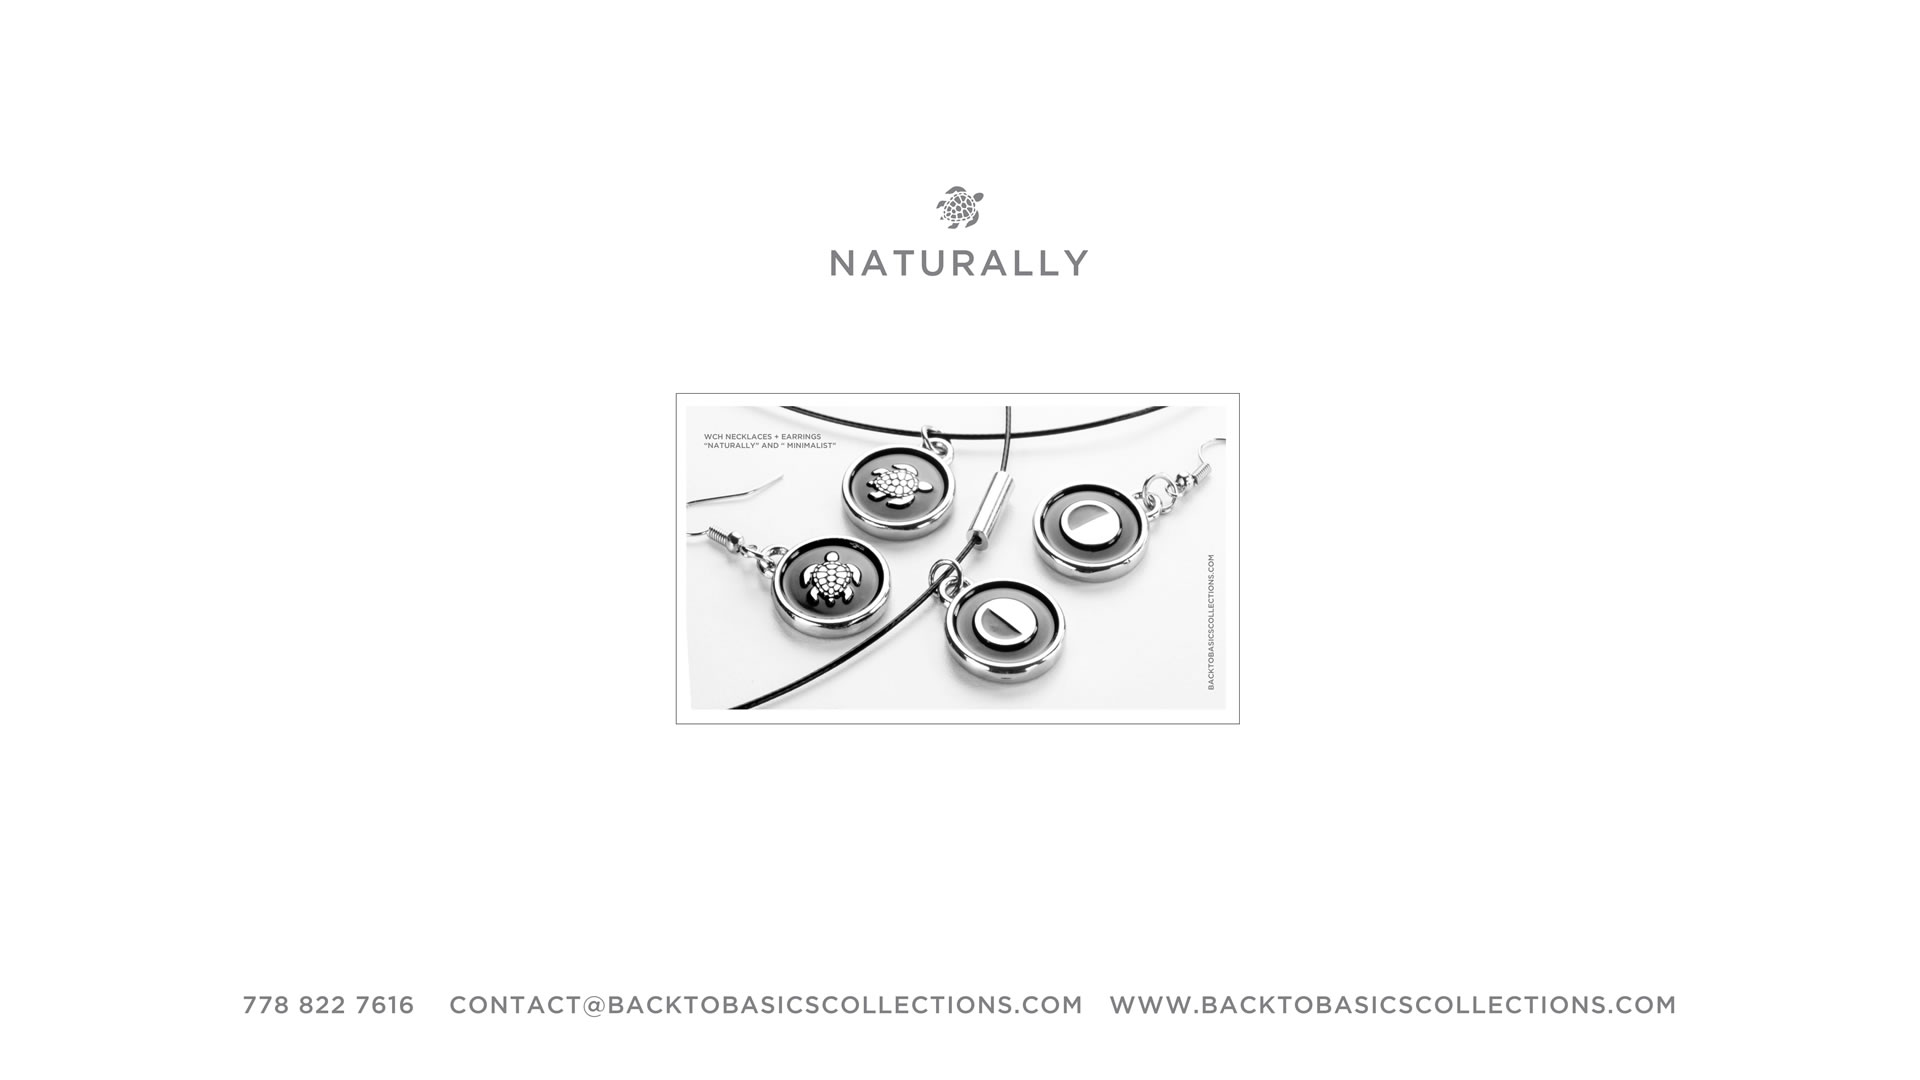 Back To Basics Collections